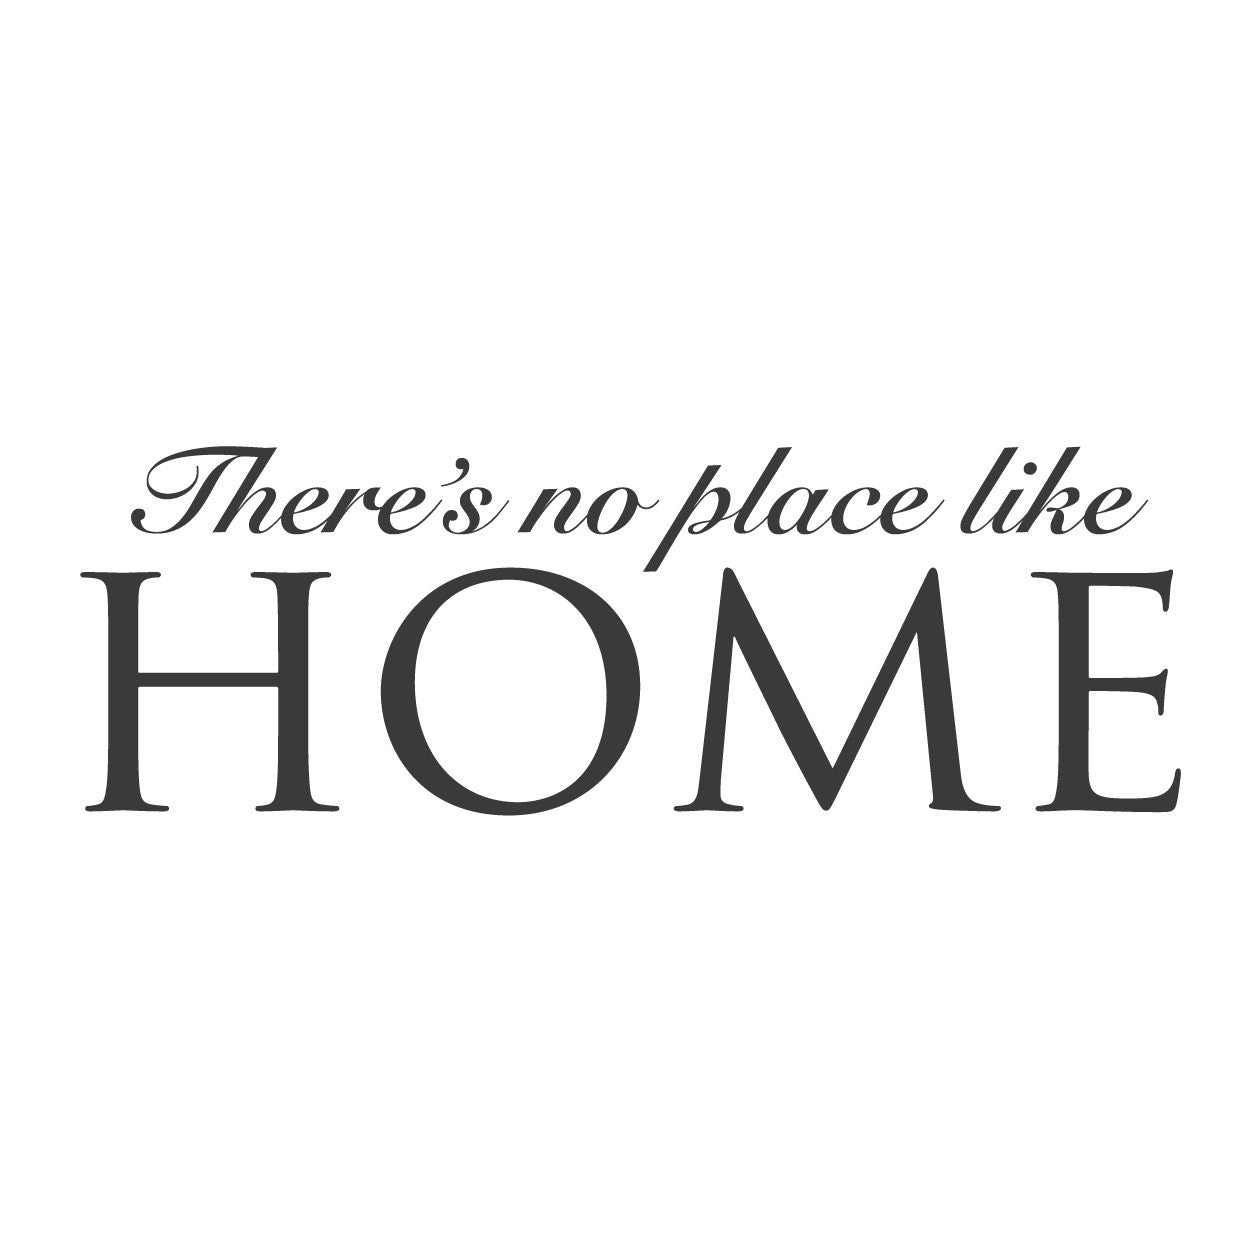 wall quotes wall decals there 39 s no place like home. Black Bedroom Furniture Sets. Home Design Ideas